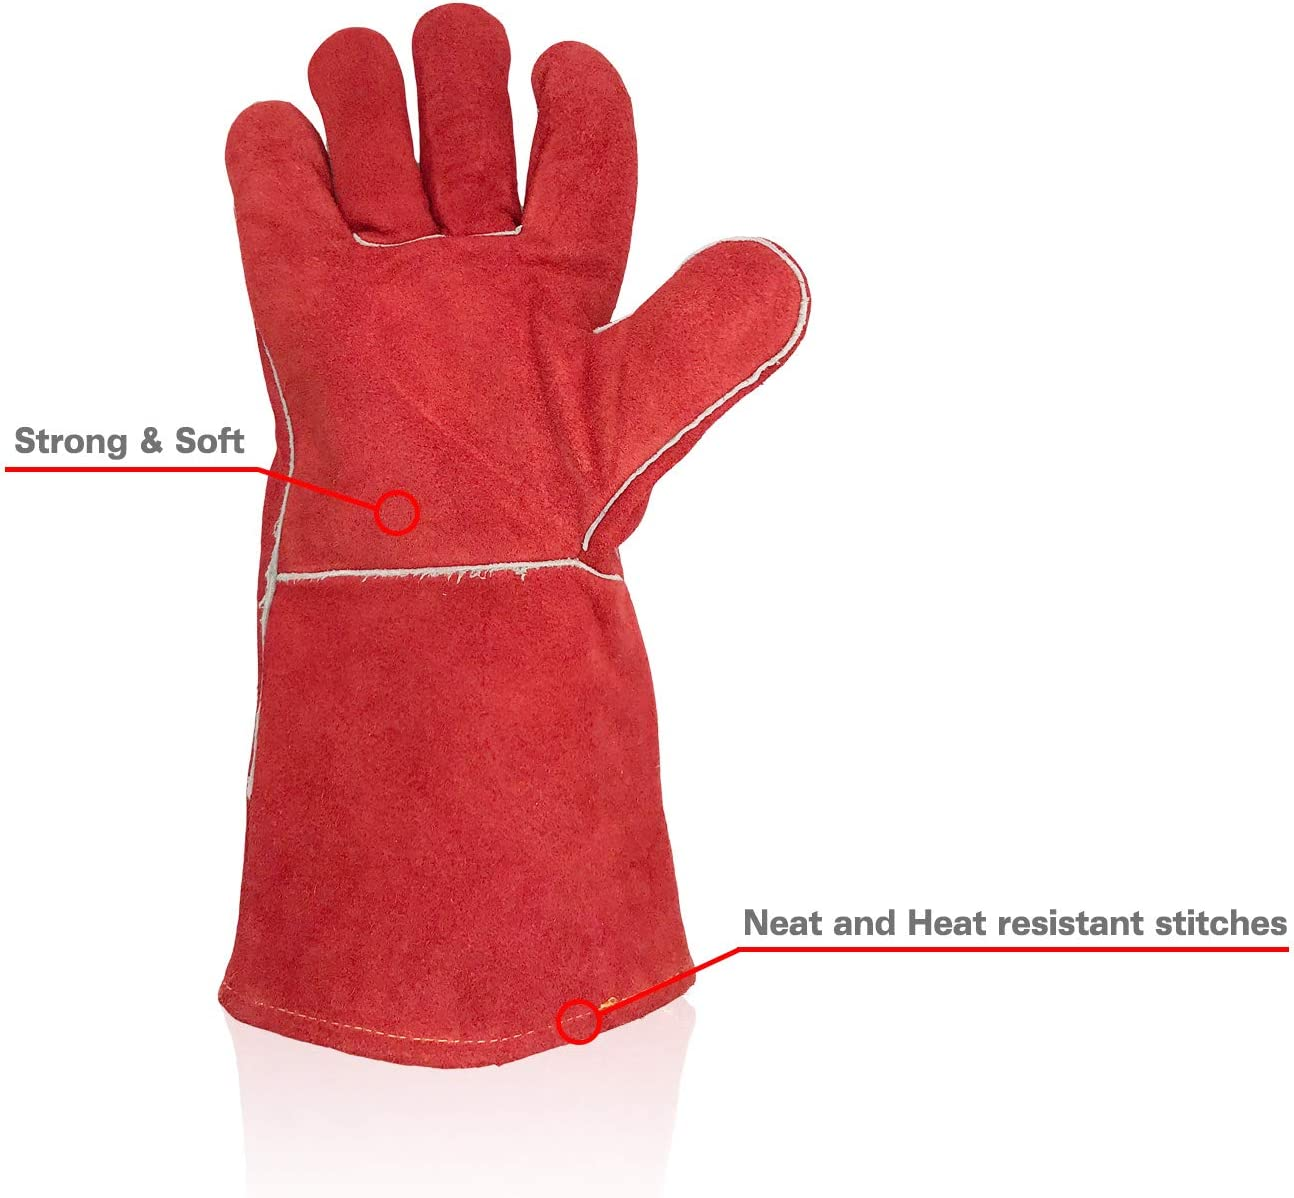 Red Fantaplus Welding Gloves Heat Resistant Wear Resistant Lined Leather and Fireproof Stitching Multifunction For Welders//Fireplace//BBQ//Gardening//Grilling//Stove